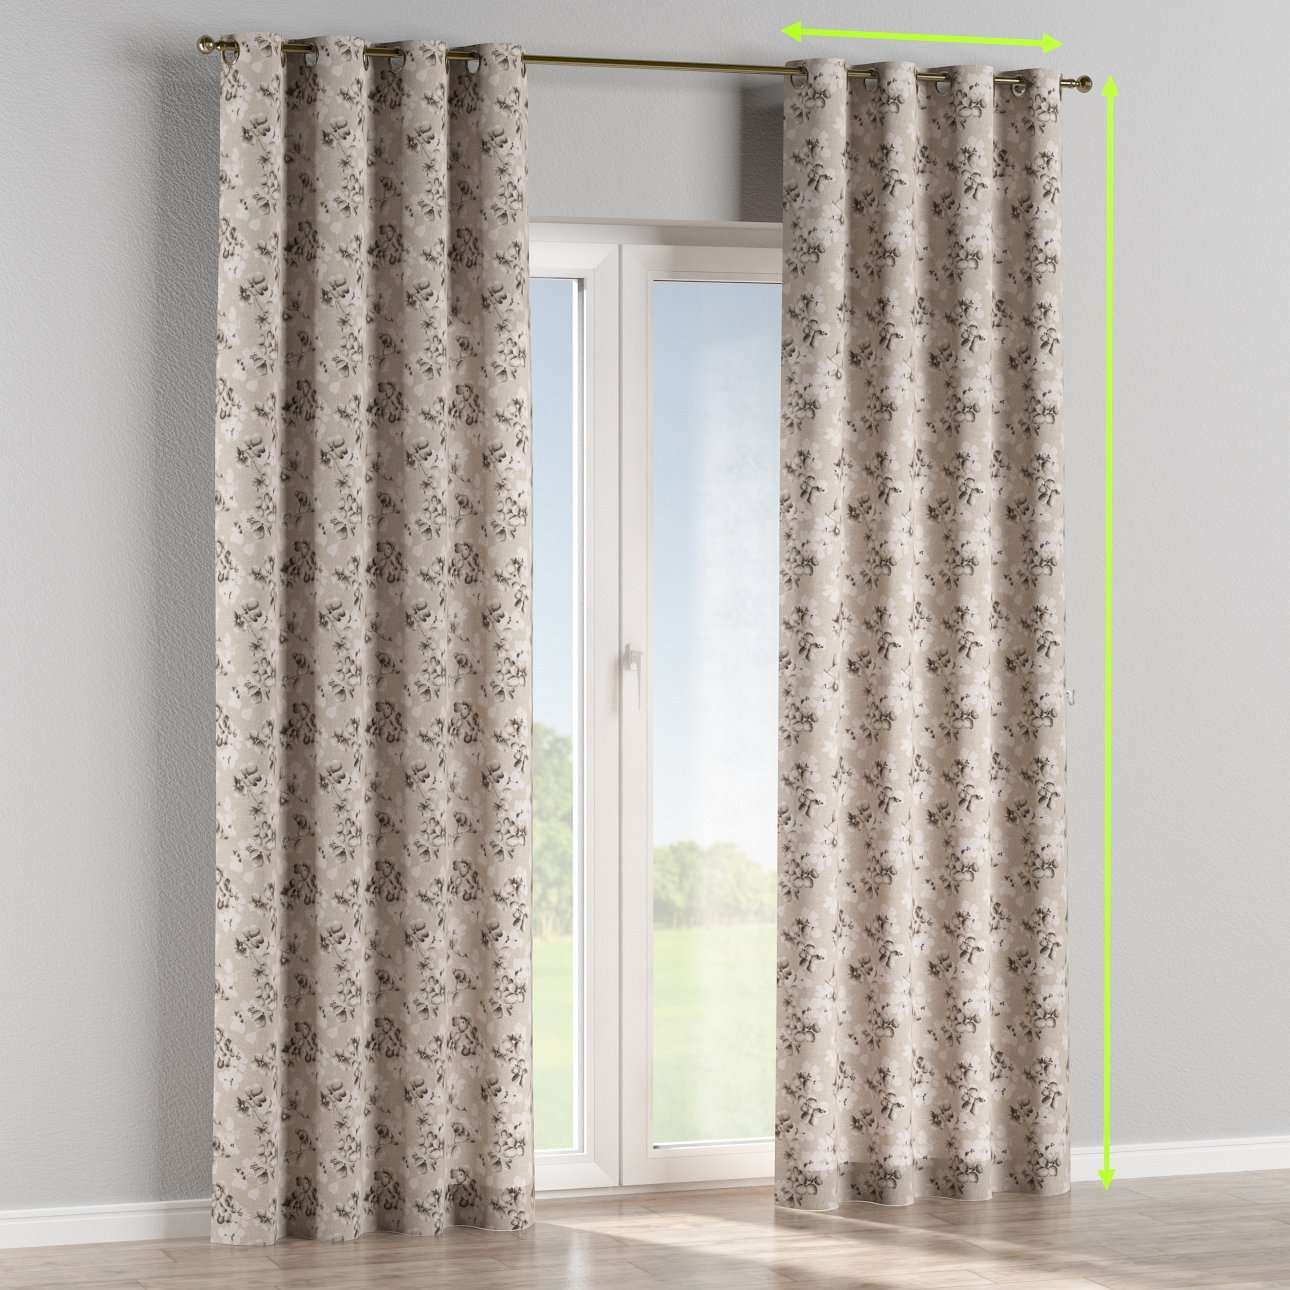 Eyelet lined curtains in collection Rustica, fabric: 138-14